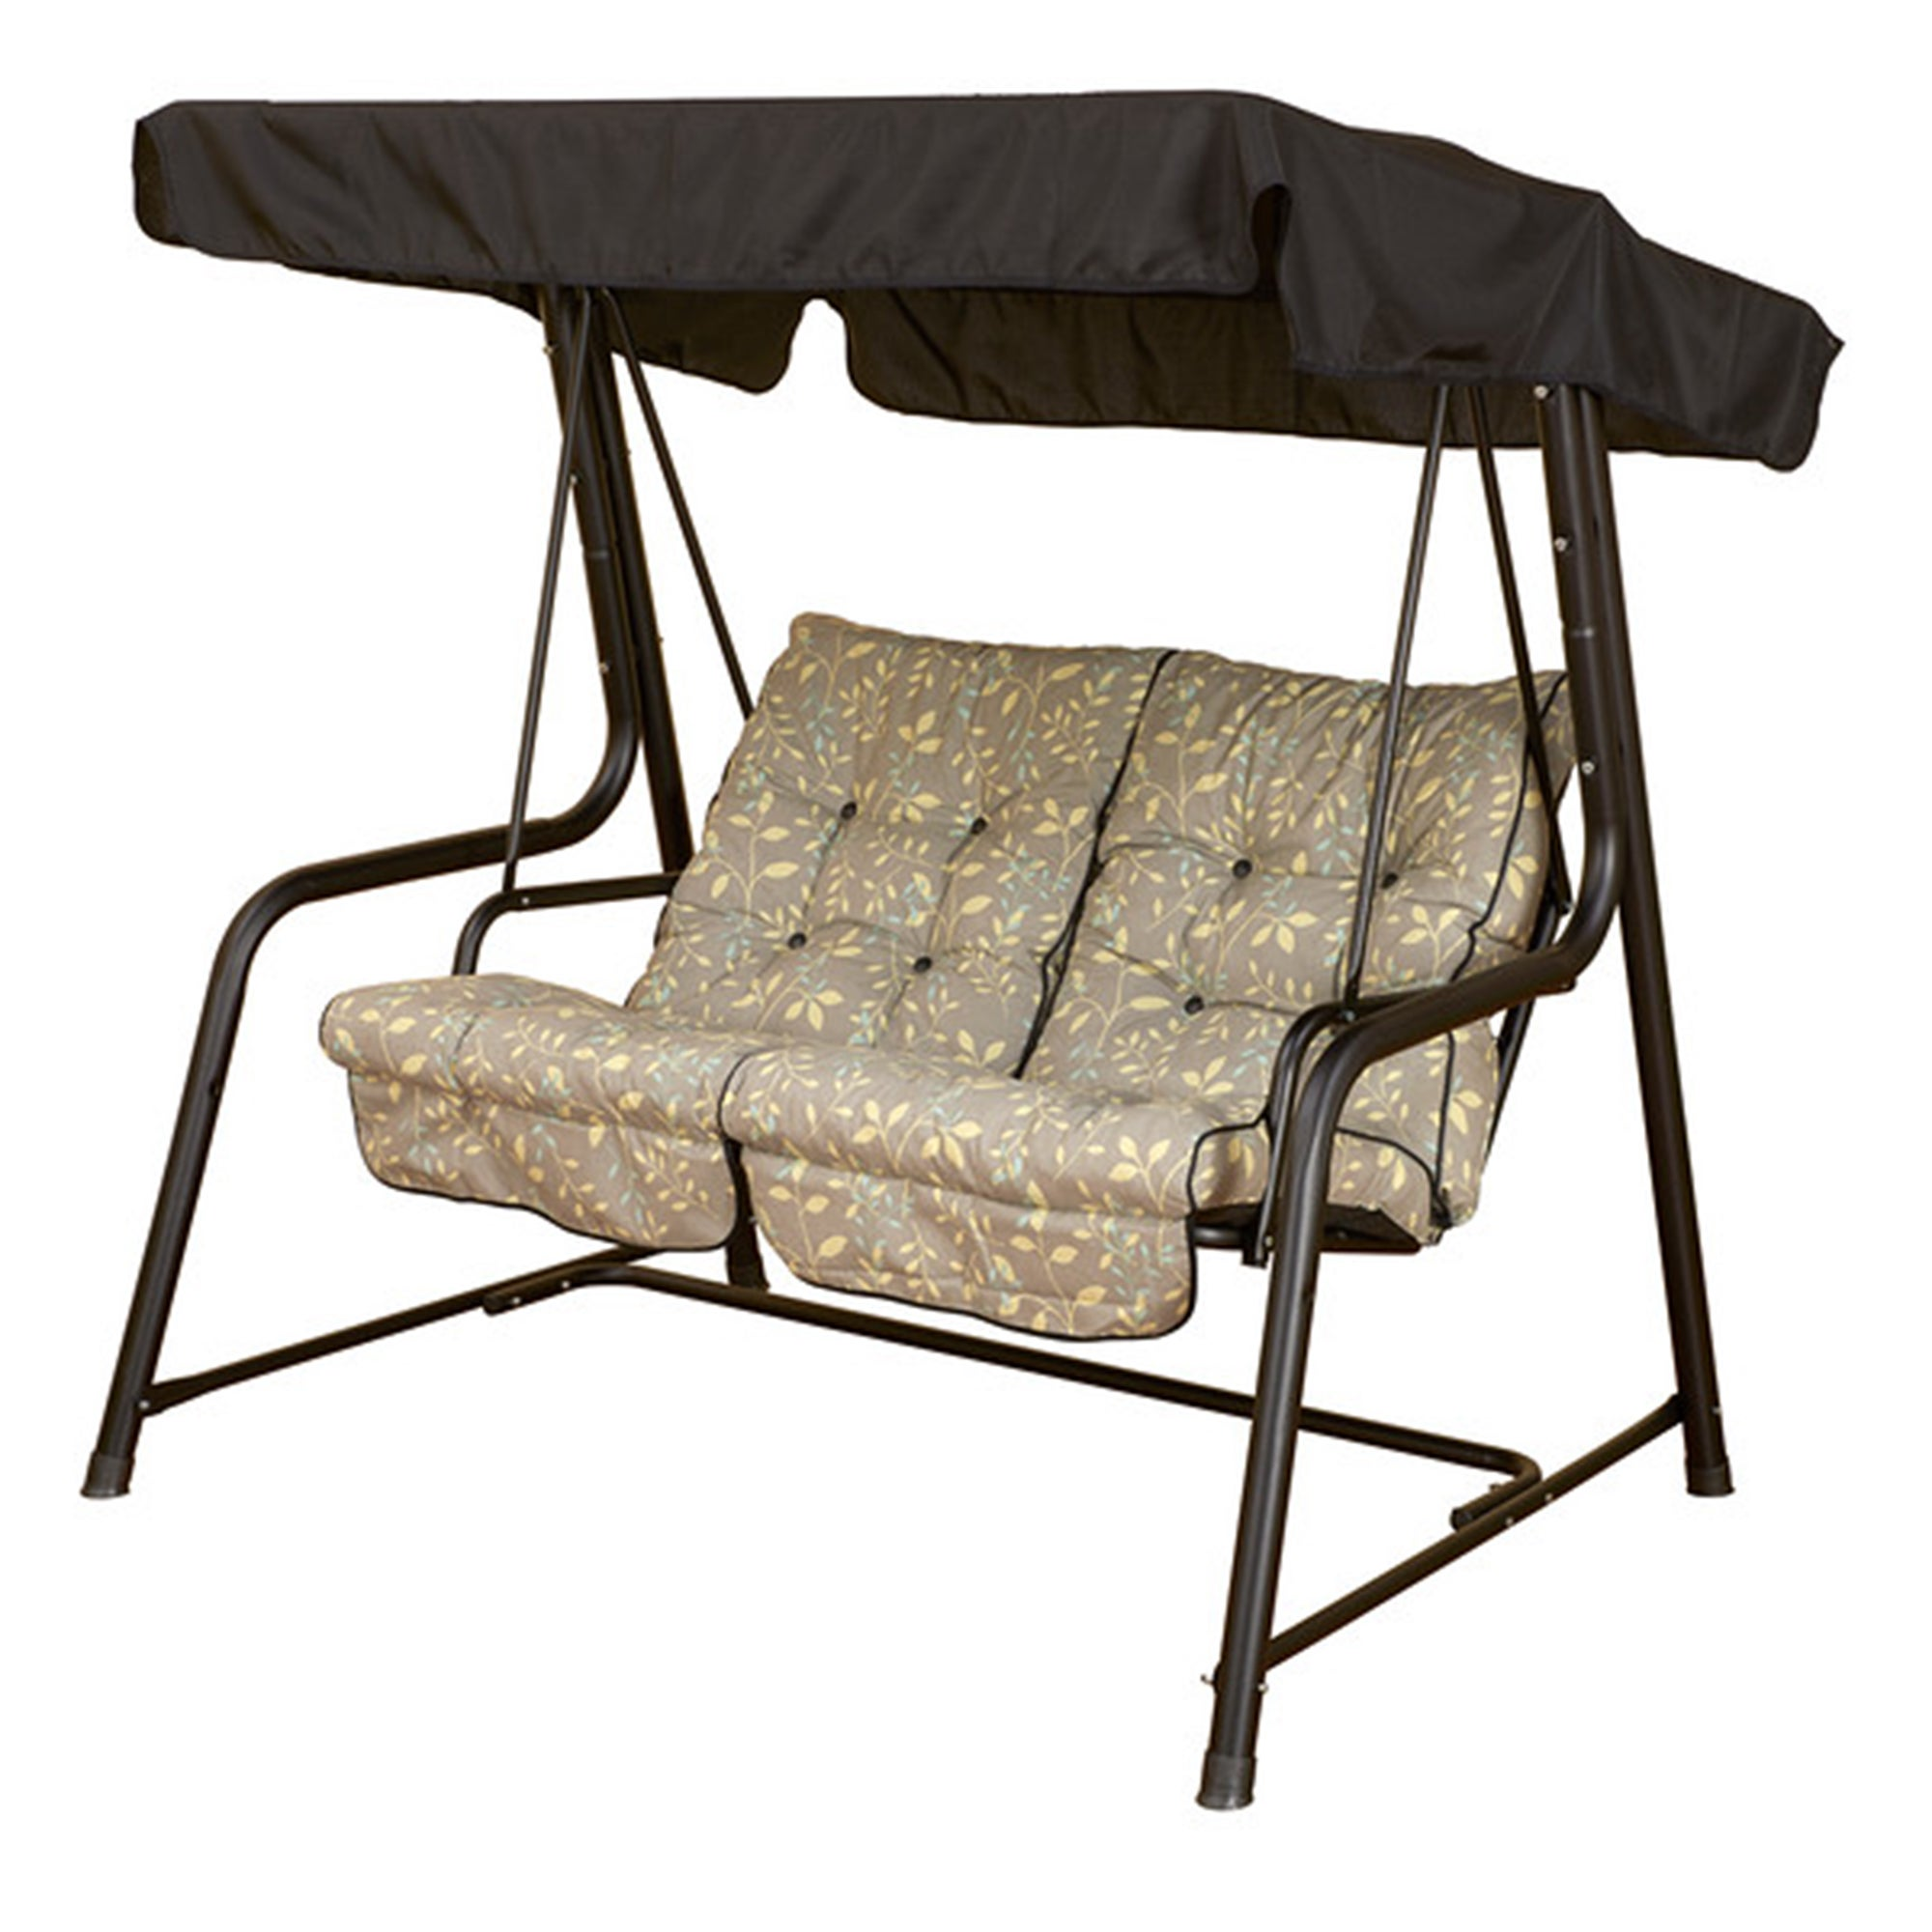 Glendale Country Teal 2 Seater Swing Seat Black